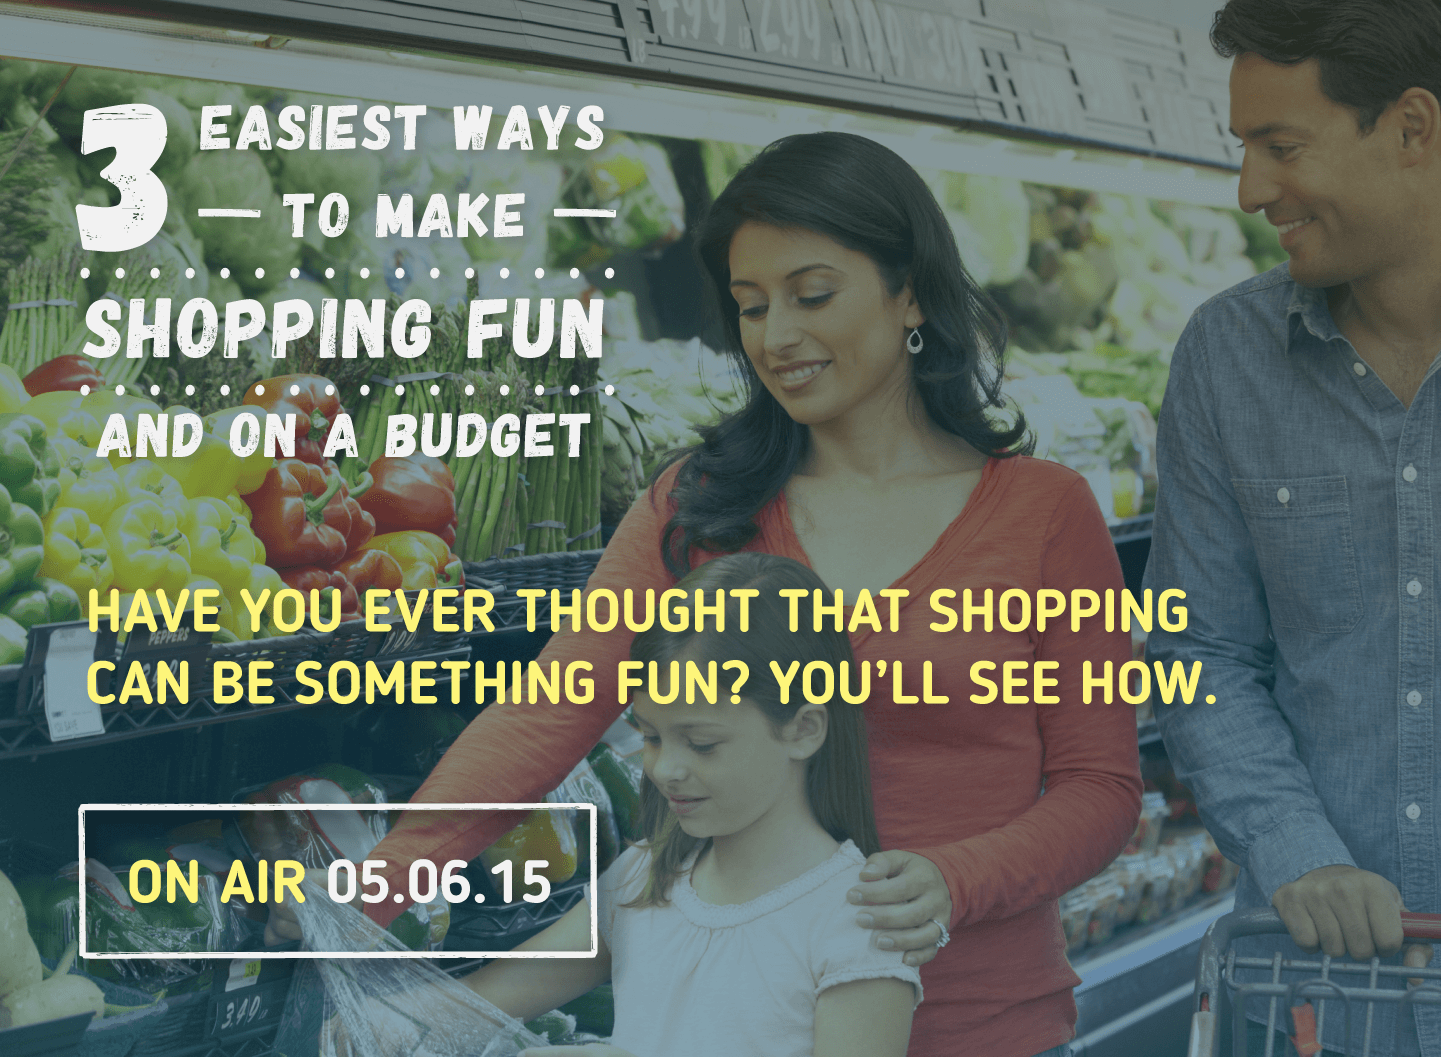 3 Easiest Ways That Make Shopping Fun And On A Budget